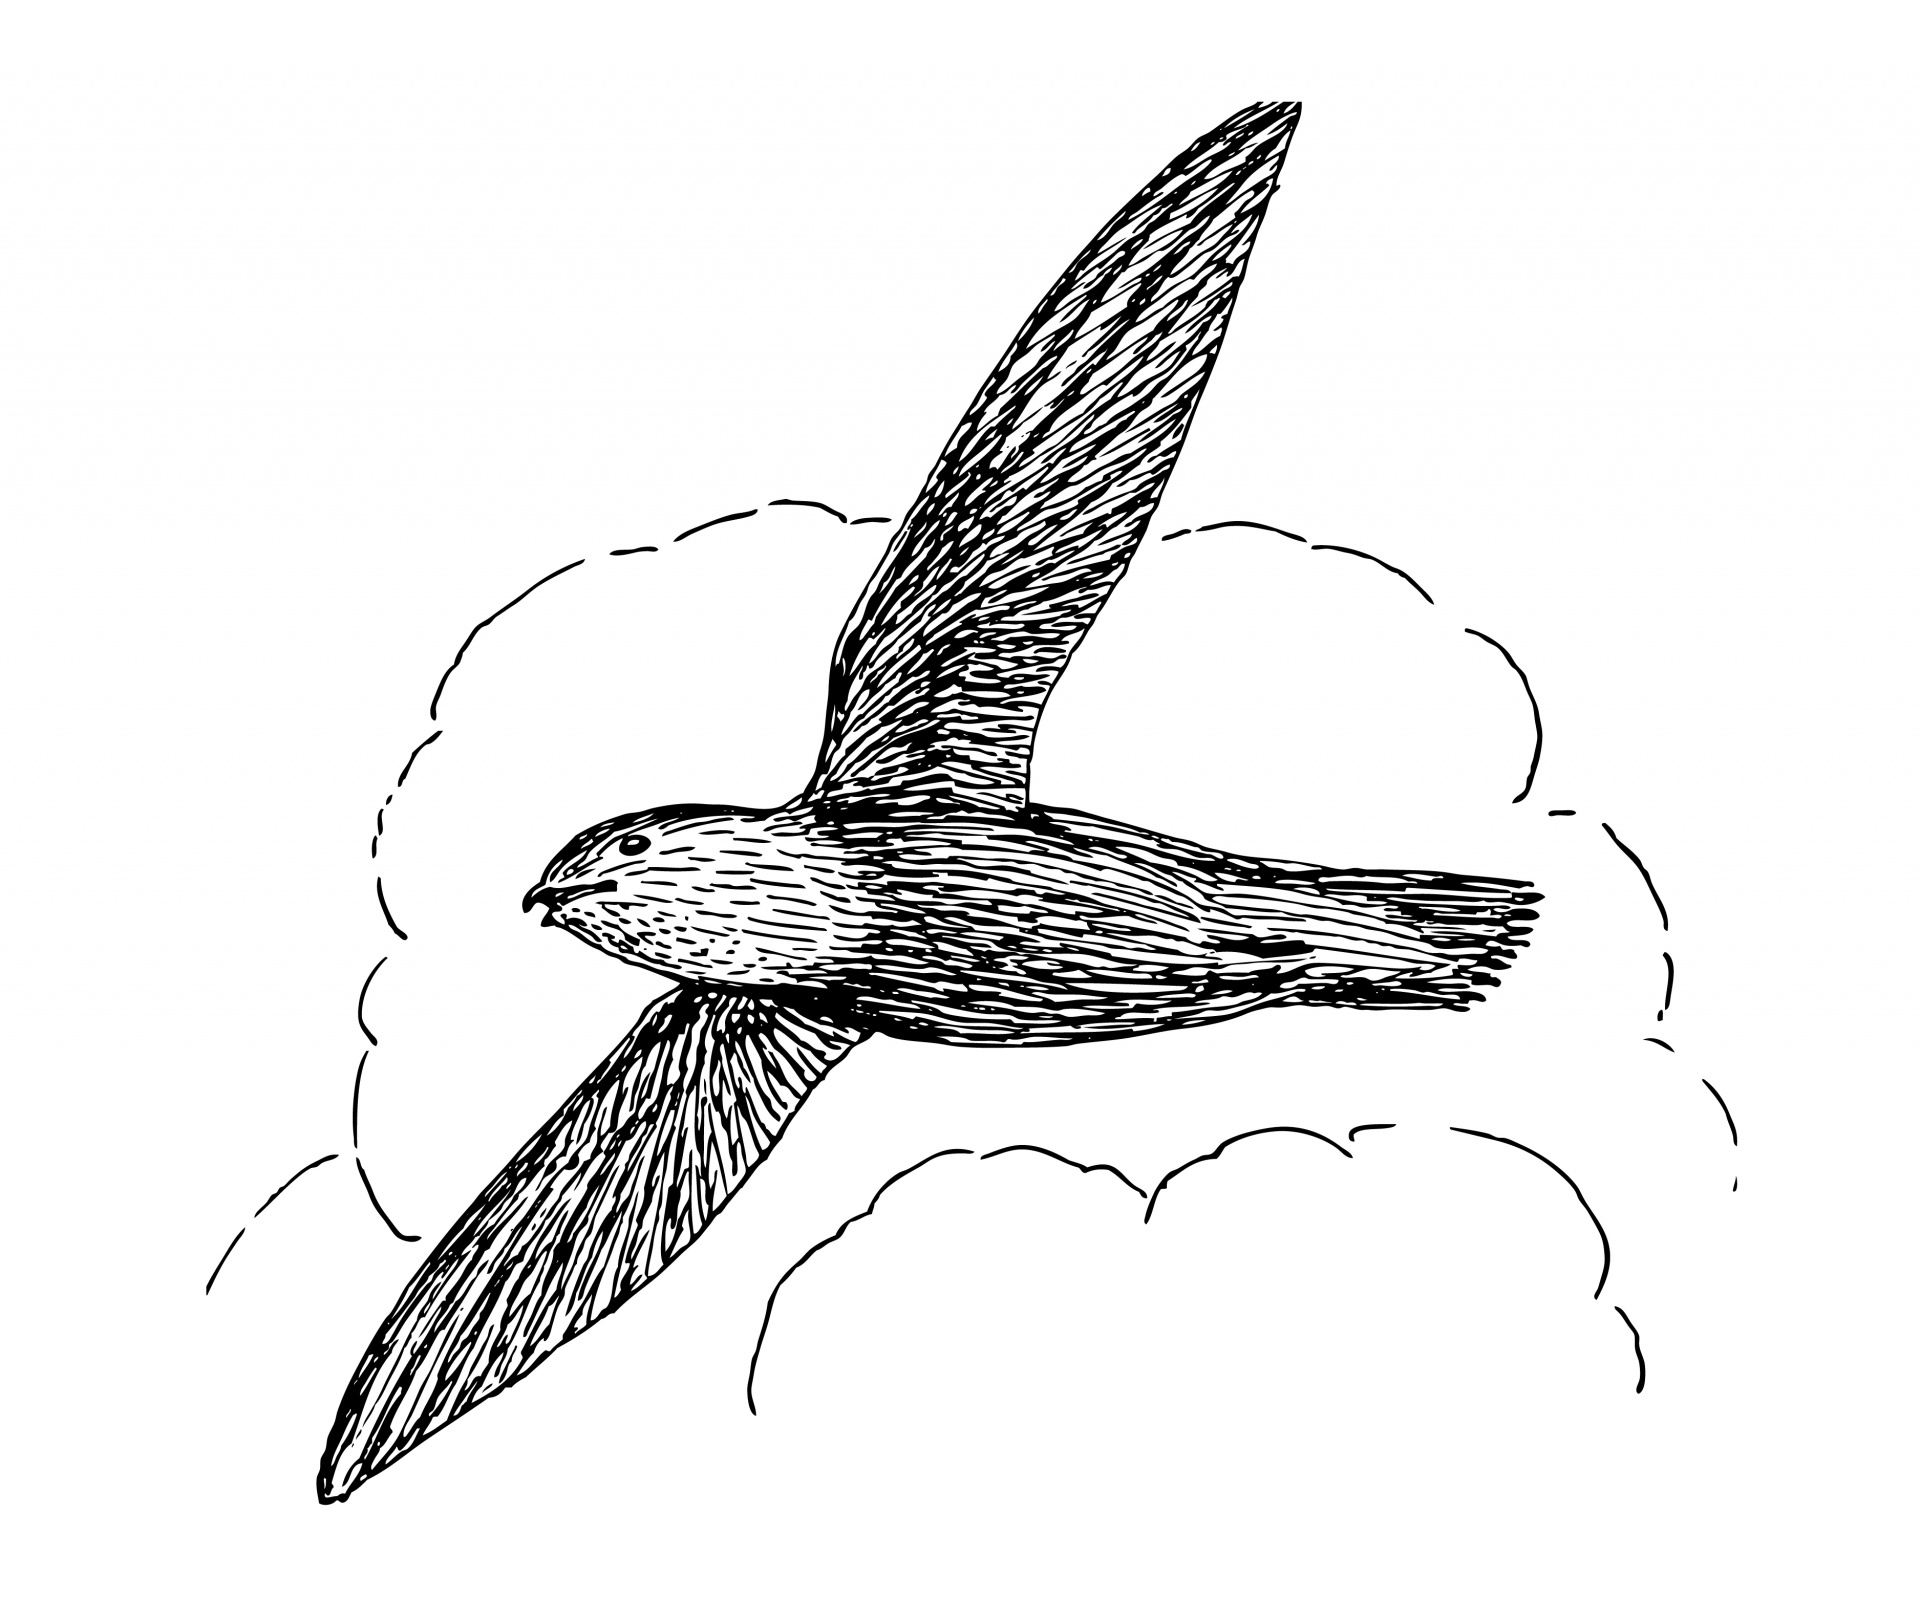 Swift Bird Clipart Illustration Free Stock Photo.